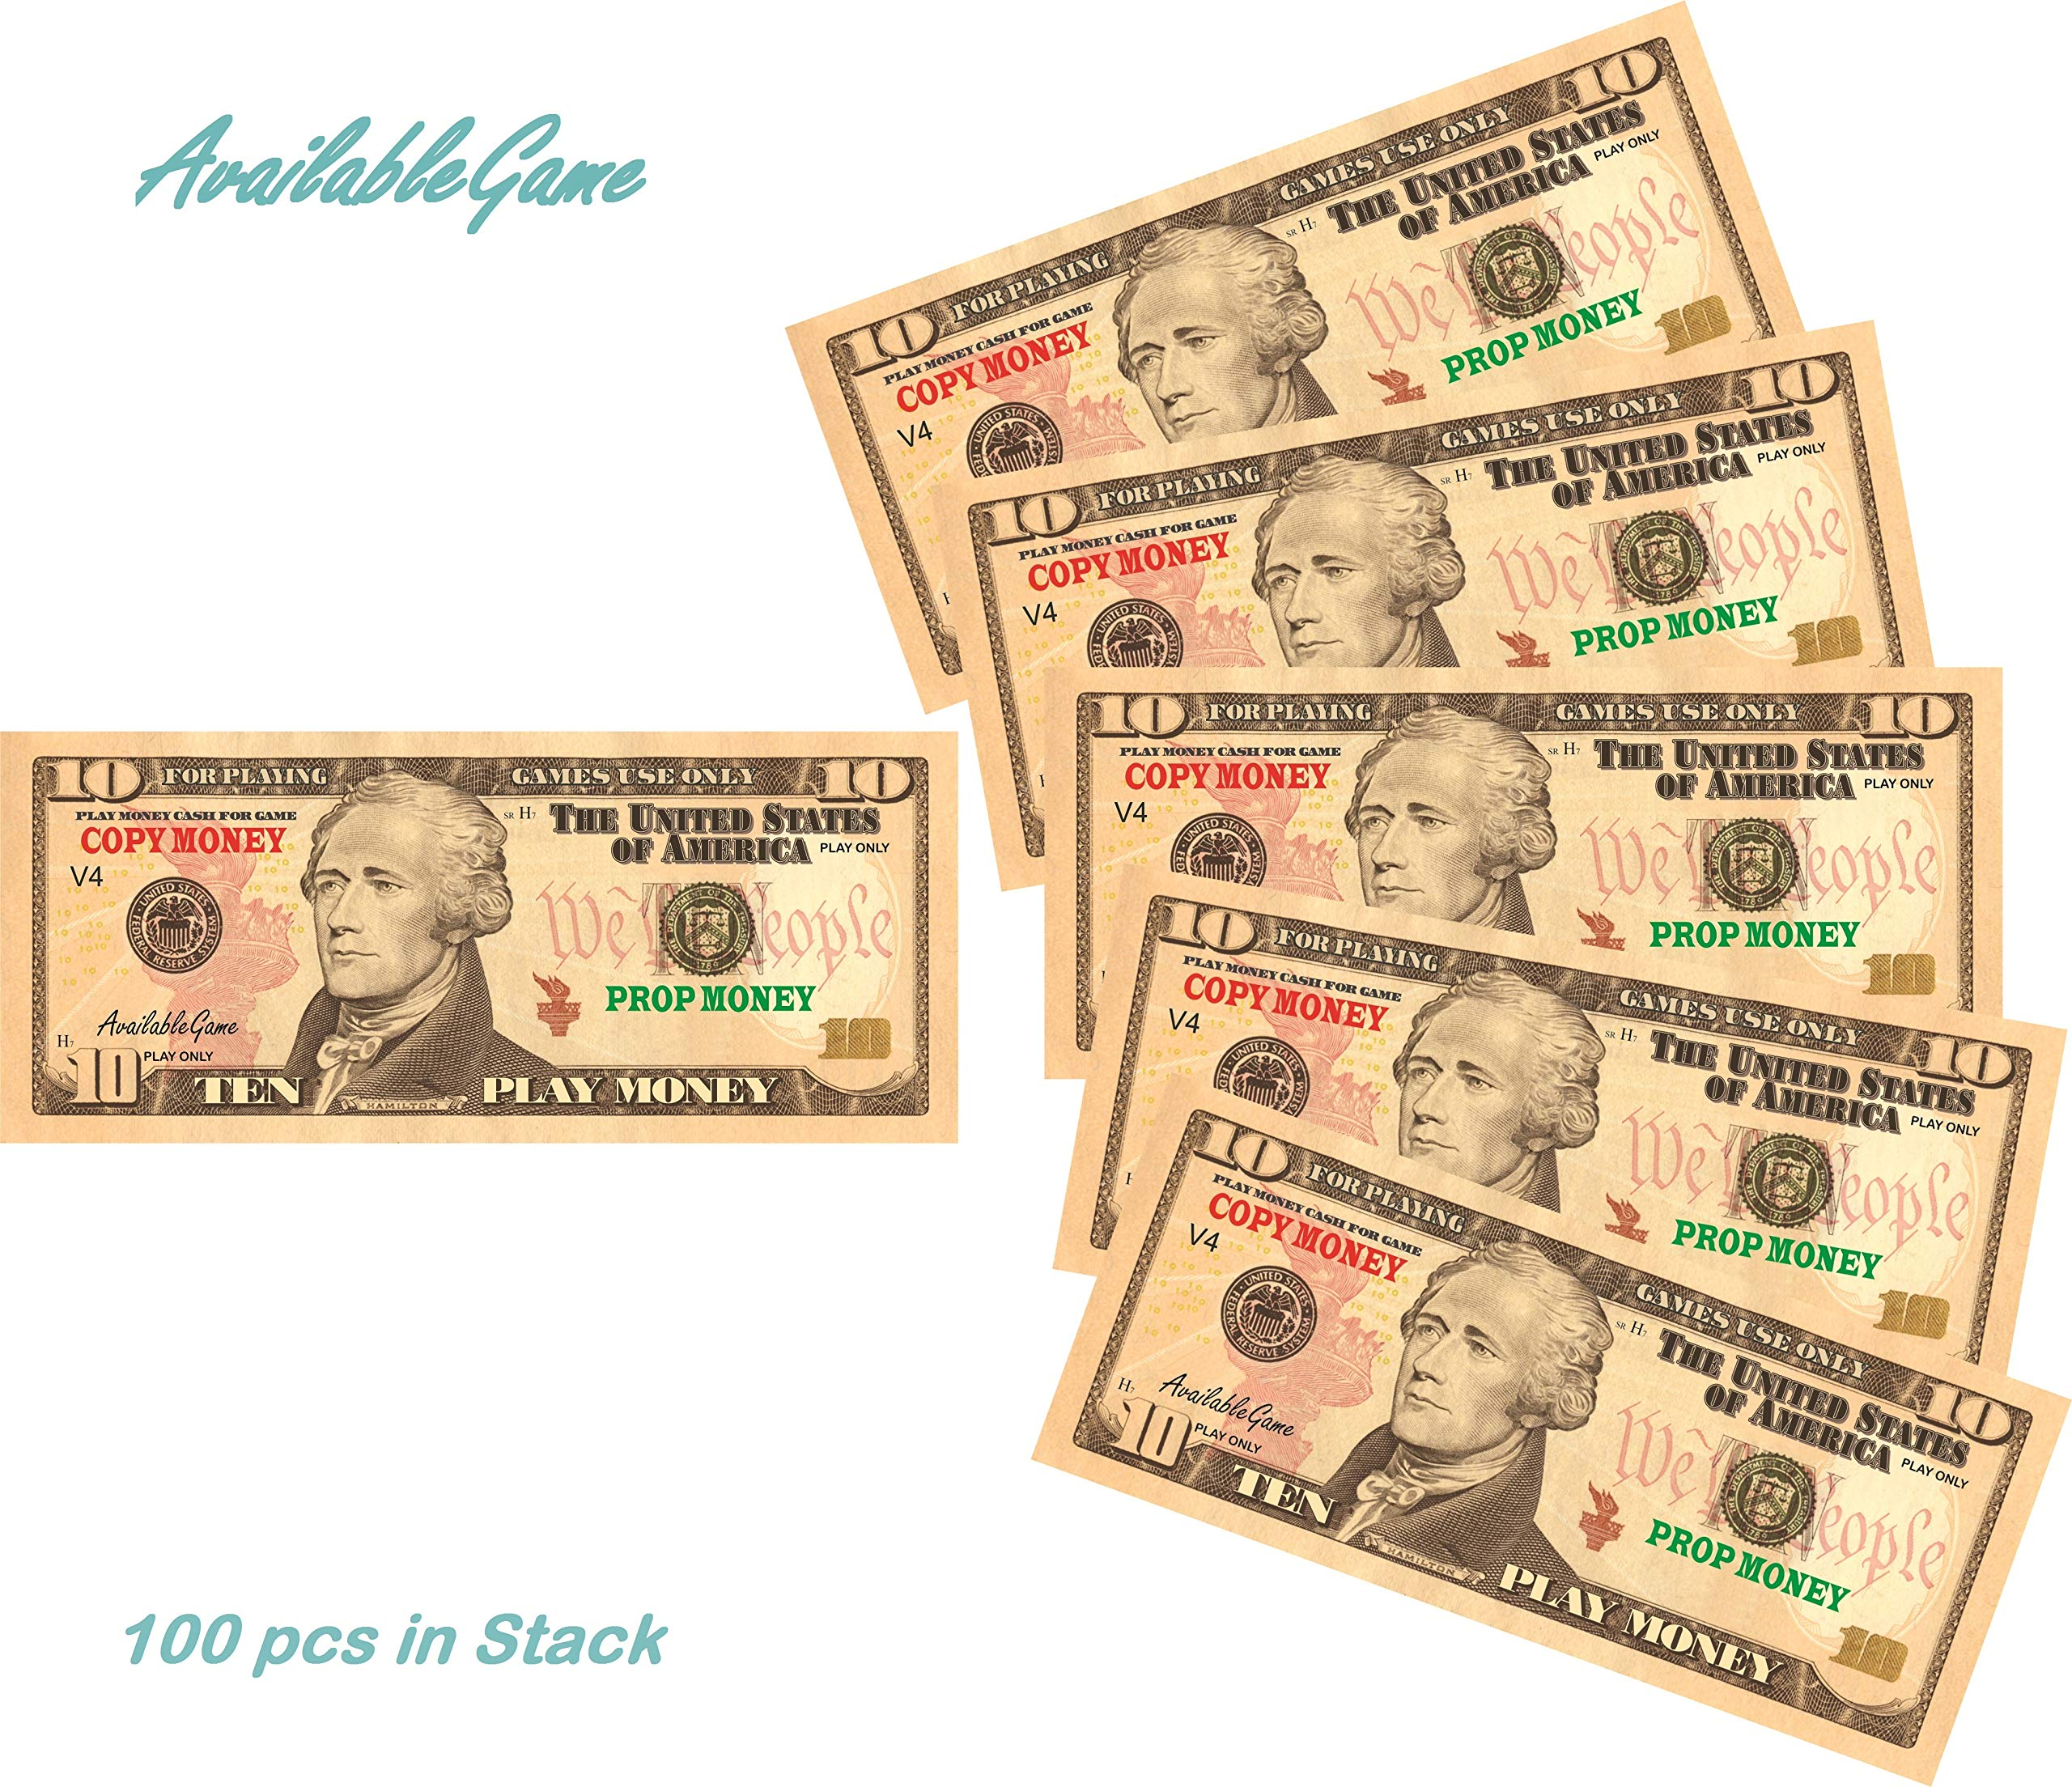 AvailableGame 10 Dollars Play Money for Games, Pranks, Monopoly Prop Paper Copy Money Double-Sided Printing 100 pcs Total $1,000 Educational Ten Dollar Bills Copy Money Stack for Kids by AvailableGame